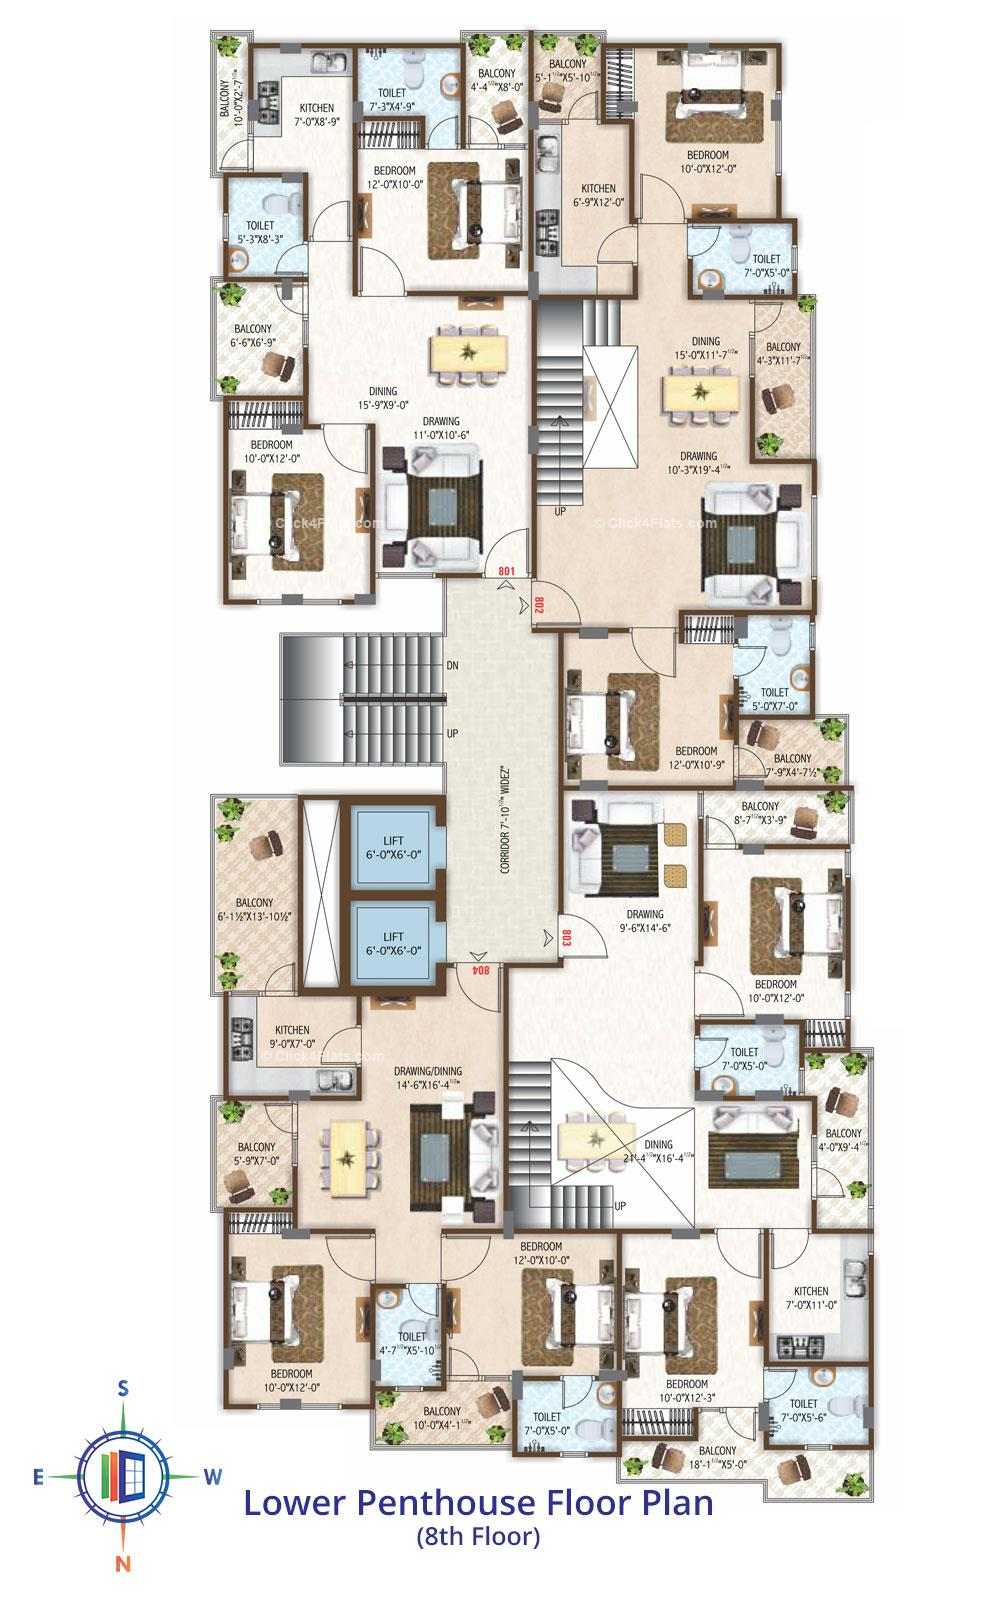 Festiva Lower Penthouse Floor Plan